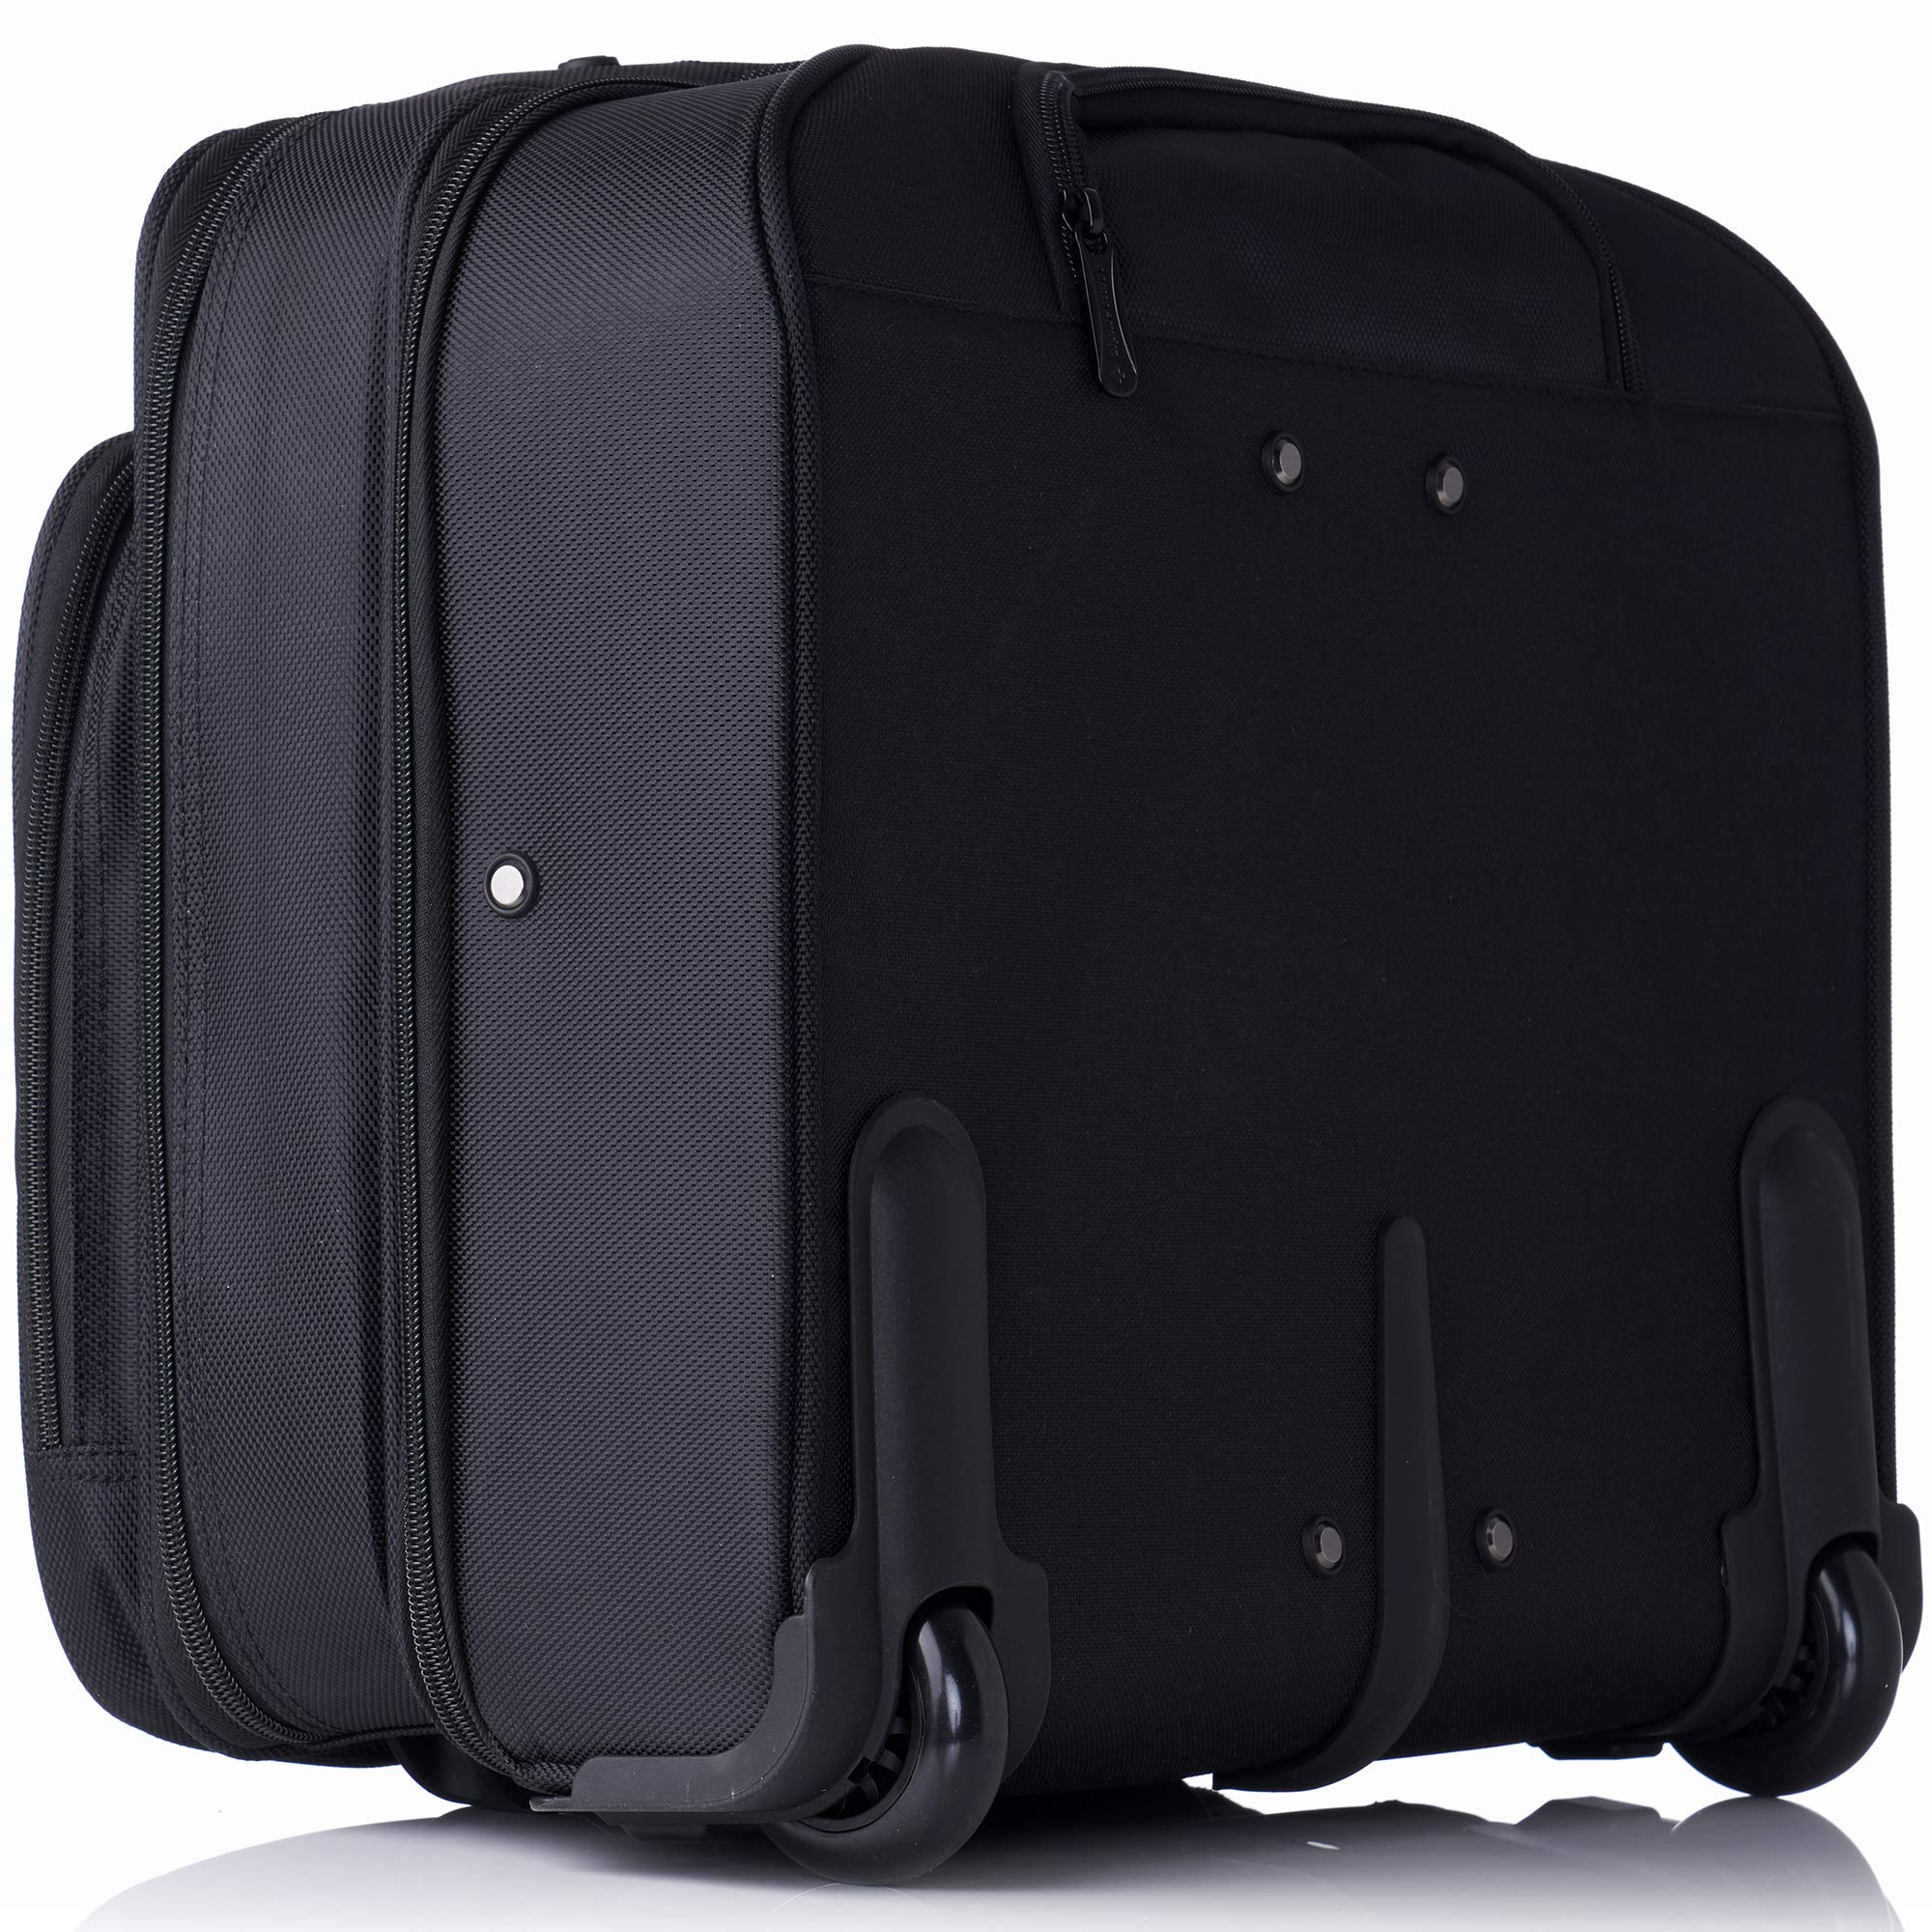 Alpine Swiss Rolling Laptop Briefcase Wheeled Overnight Carry on Bag Up to 15.6 Inches Notebook - Carries Legal Size Files by alpine swiss (Image #7)